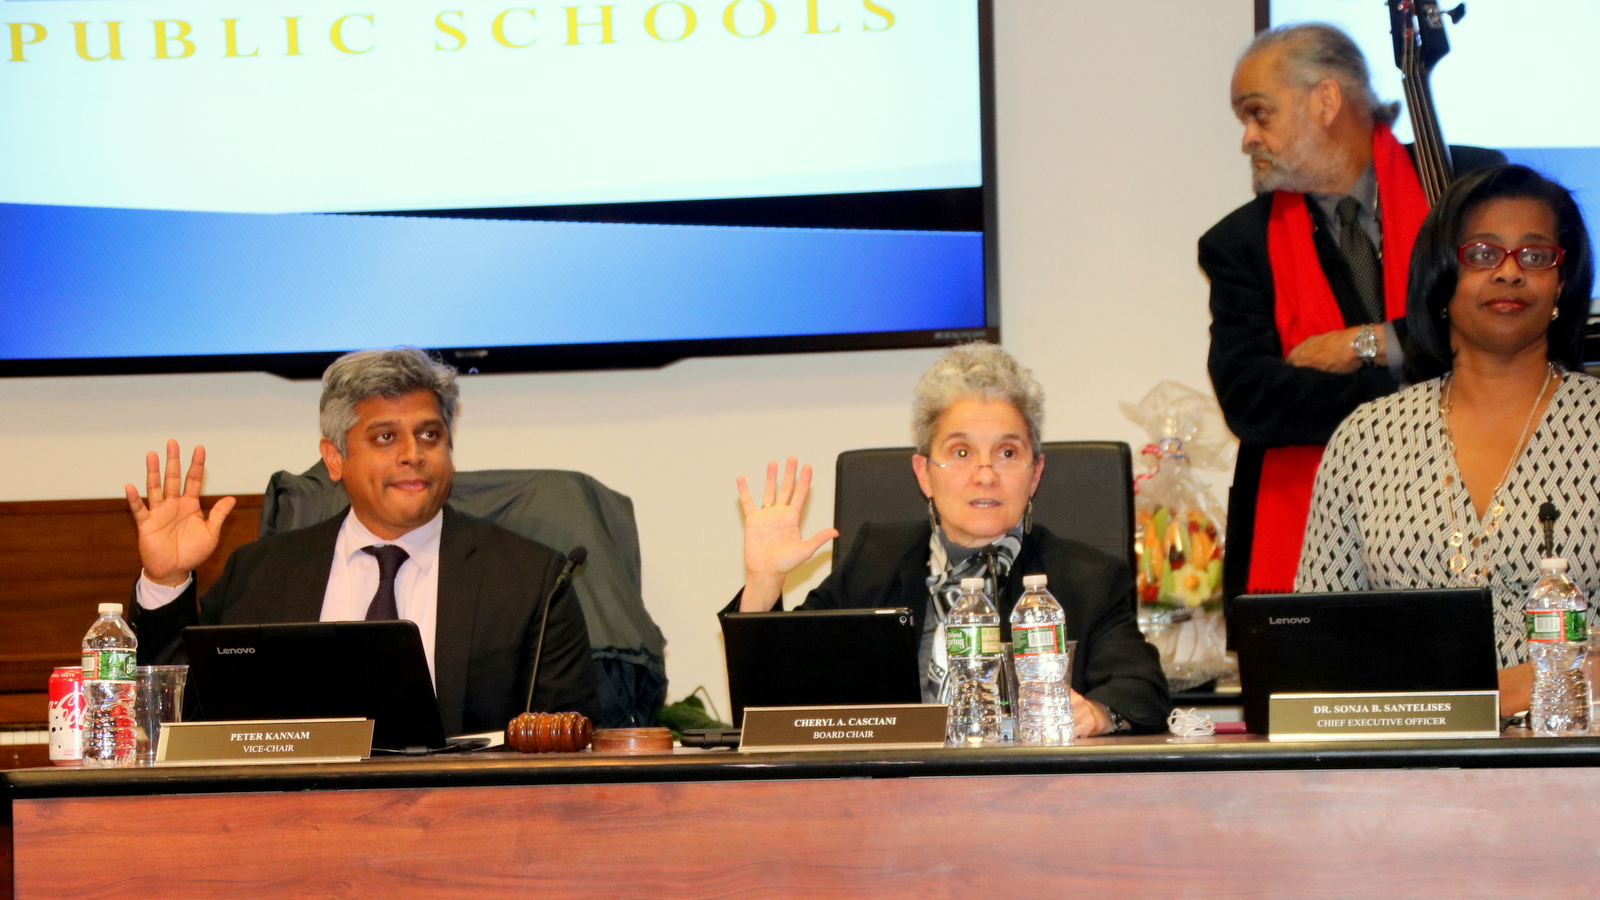 (From left) Peter Kanam, Cheryl Casciani and Sonja Santelises at the start of city school board meeting. (Fern Shen)